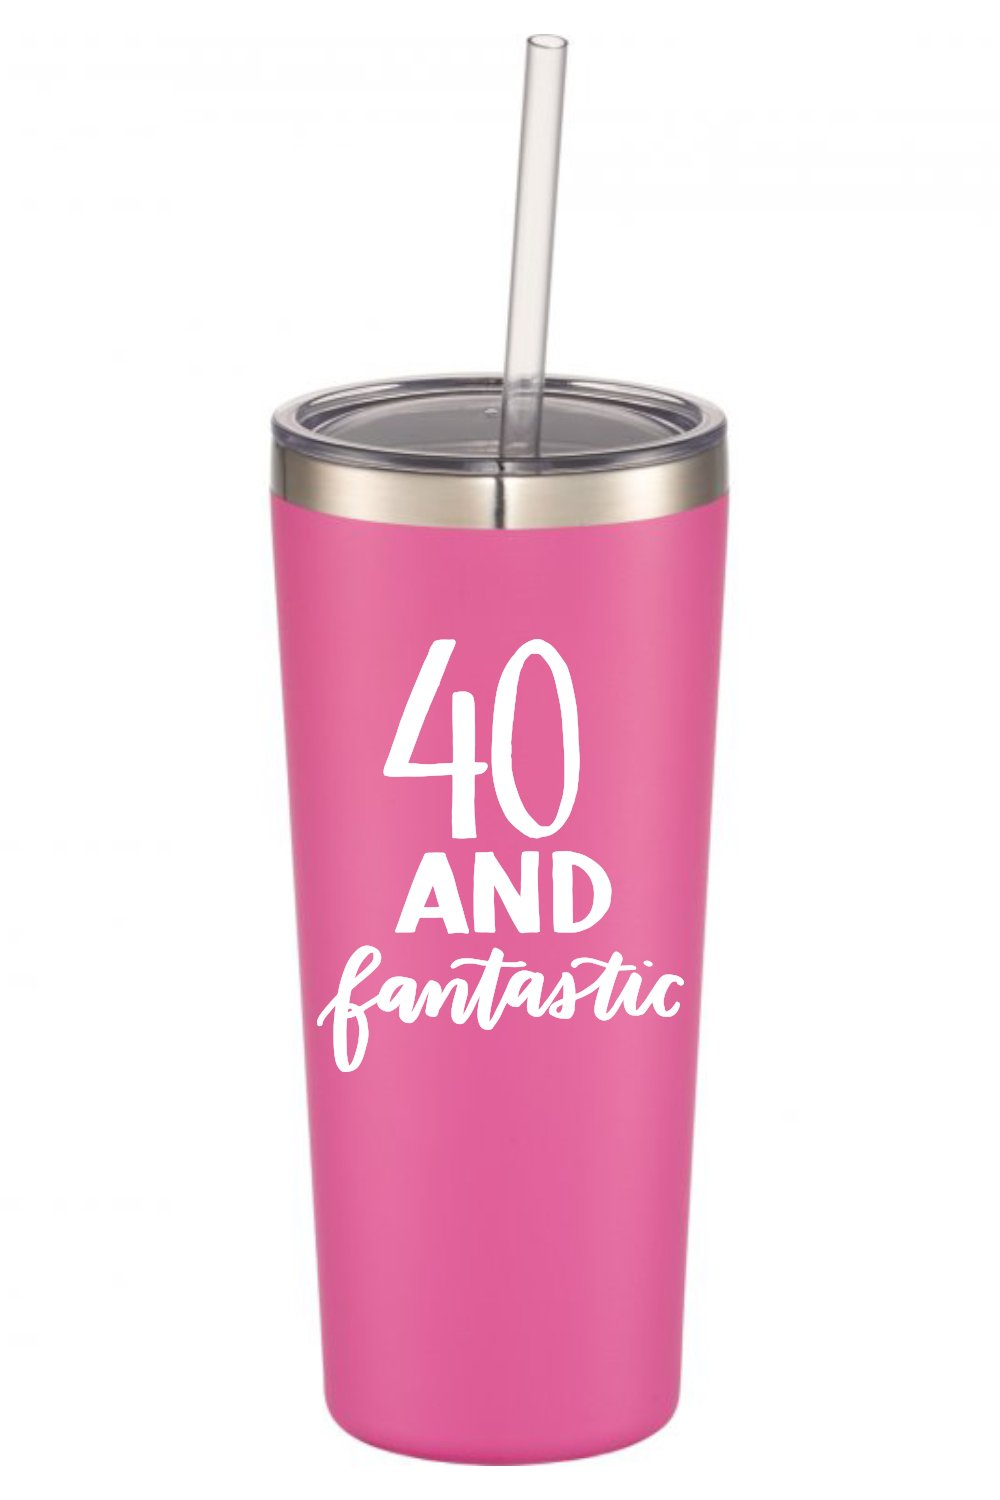 40 and Fantastic | 22 oz Stainless Steel Insulated Tumbler with Lid and Straw | 40th Birthday Gift | Christmas